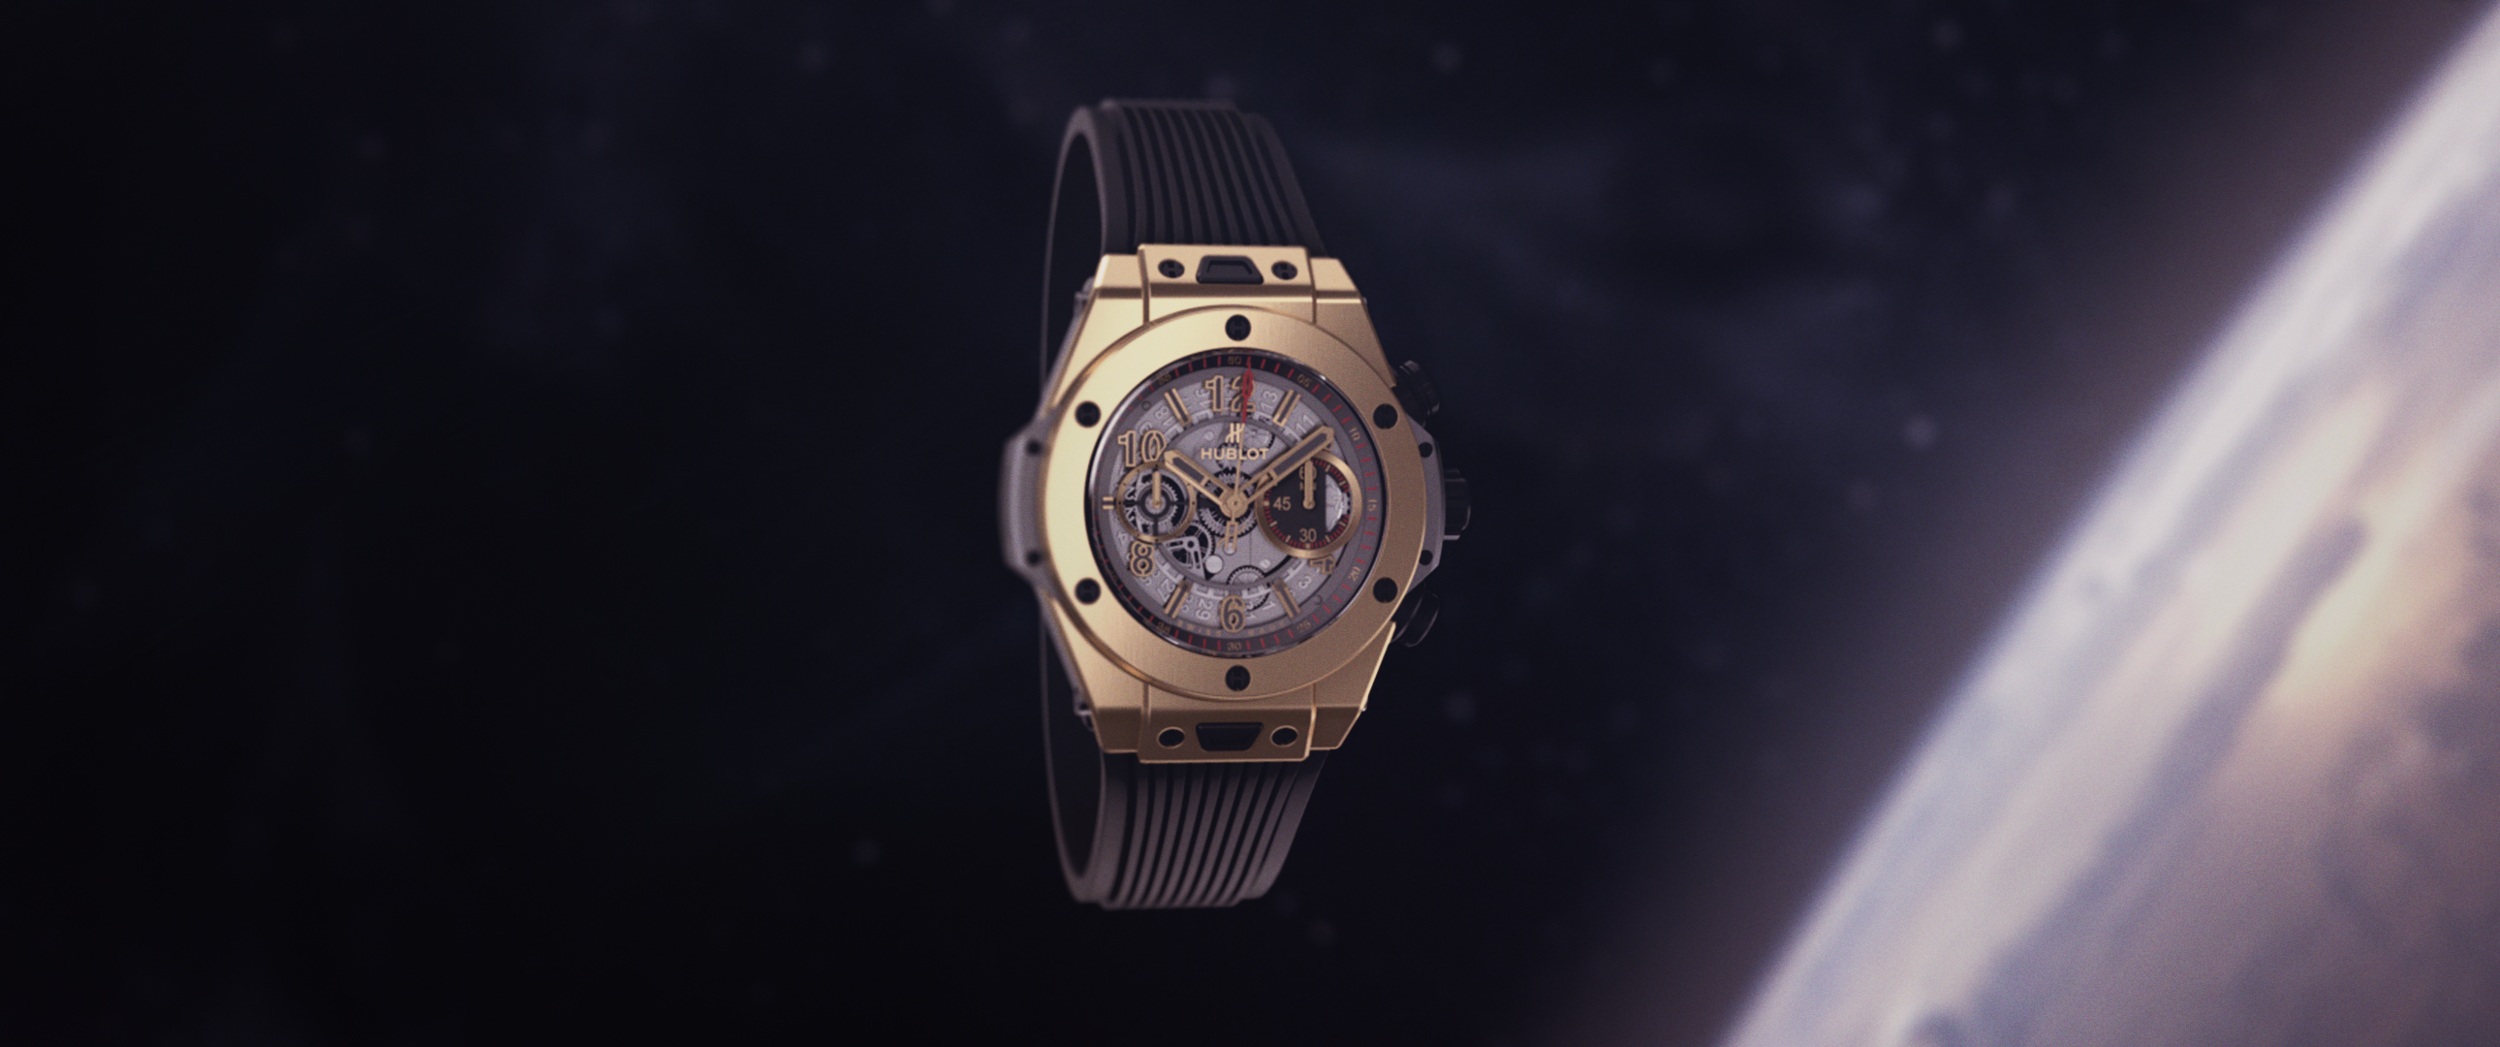 Hublot_Frame-18 copy.png